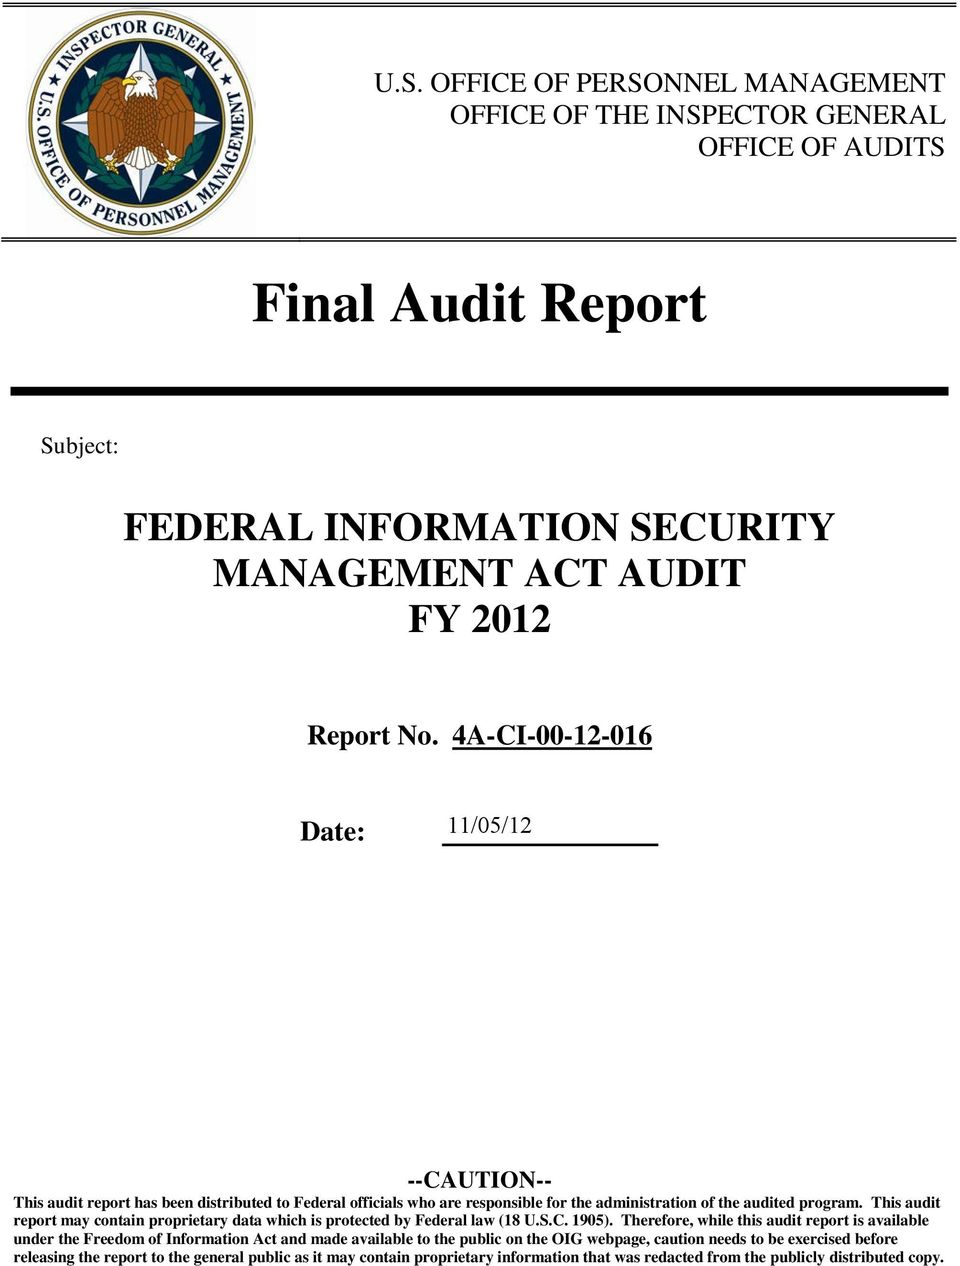 This audit report may contain proprietary data which is protected by Federal law (18 U.S.C. 1905).